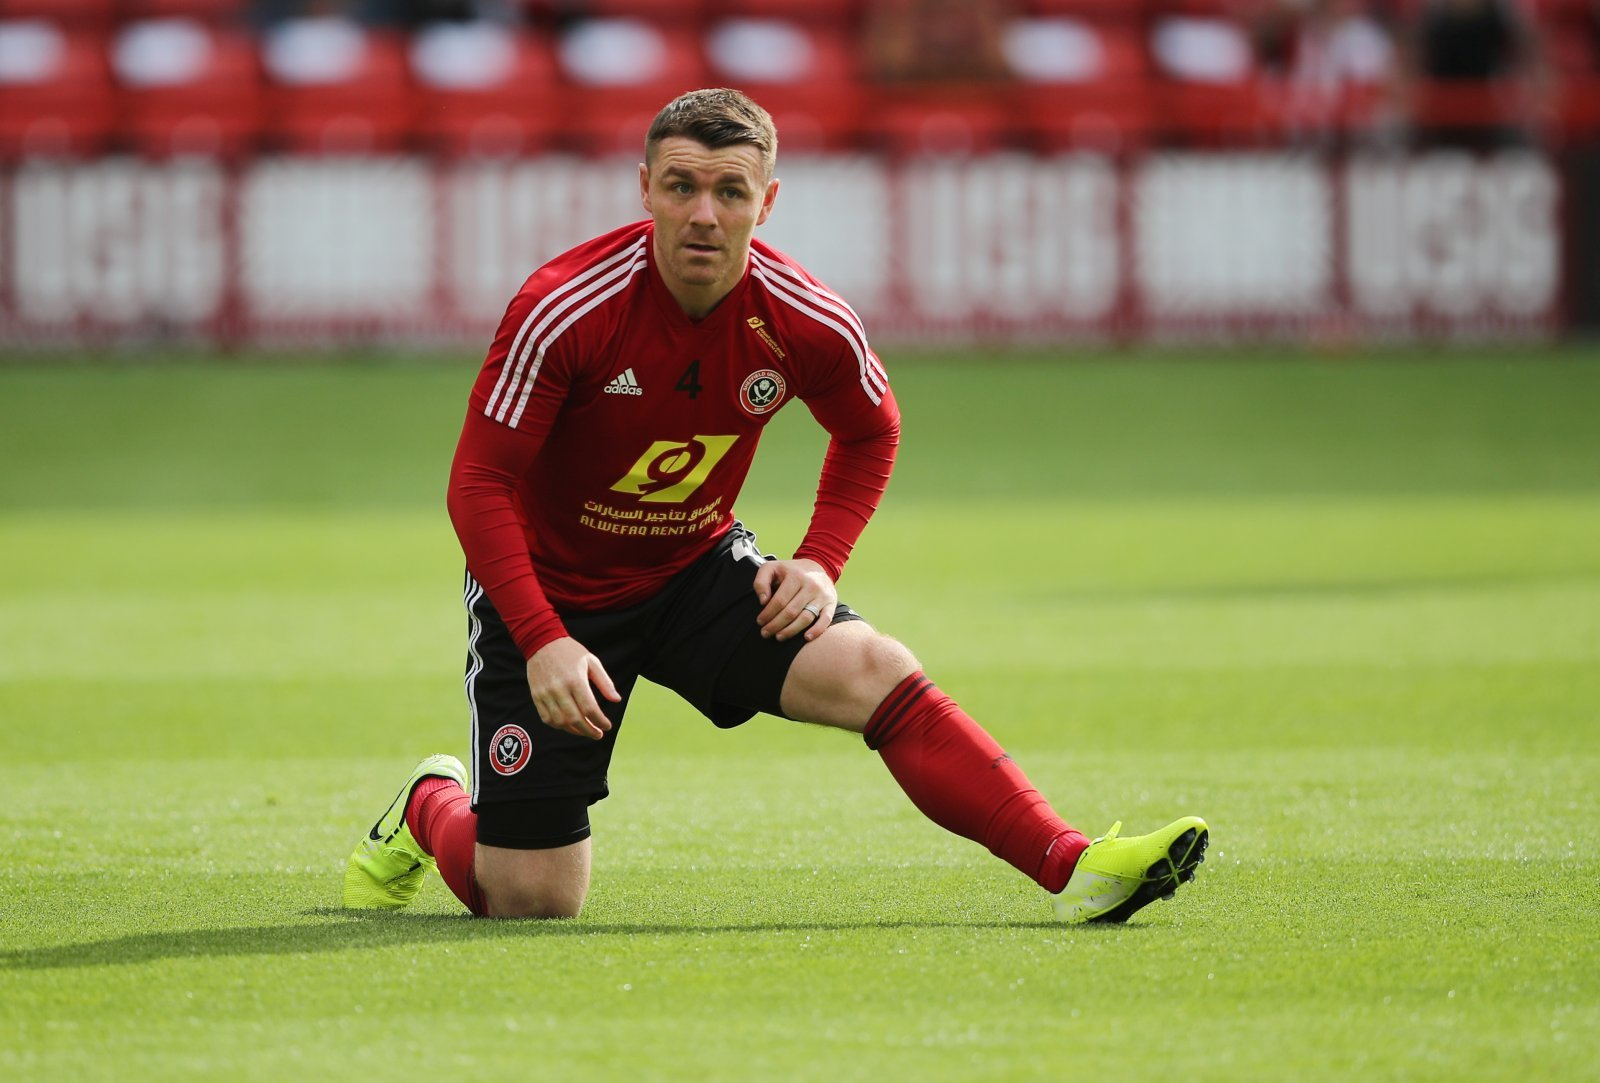 Sheffield United: John Fleck and Oliver McBurnie called up by Scotland for November internationals